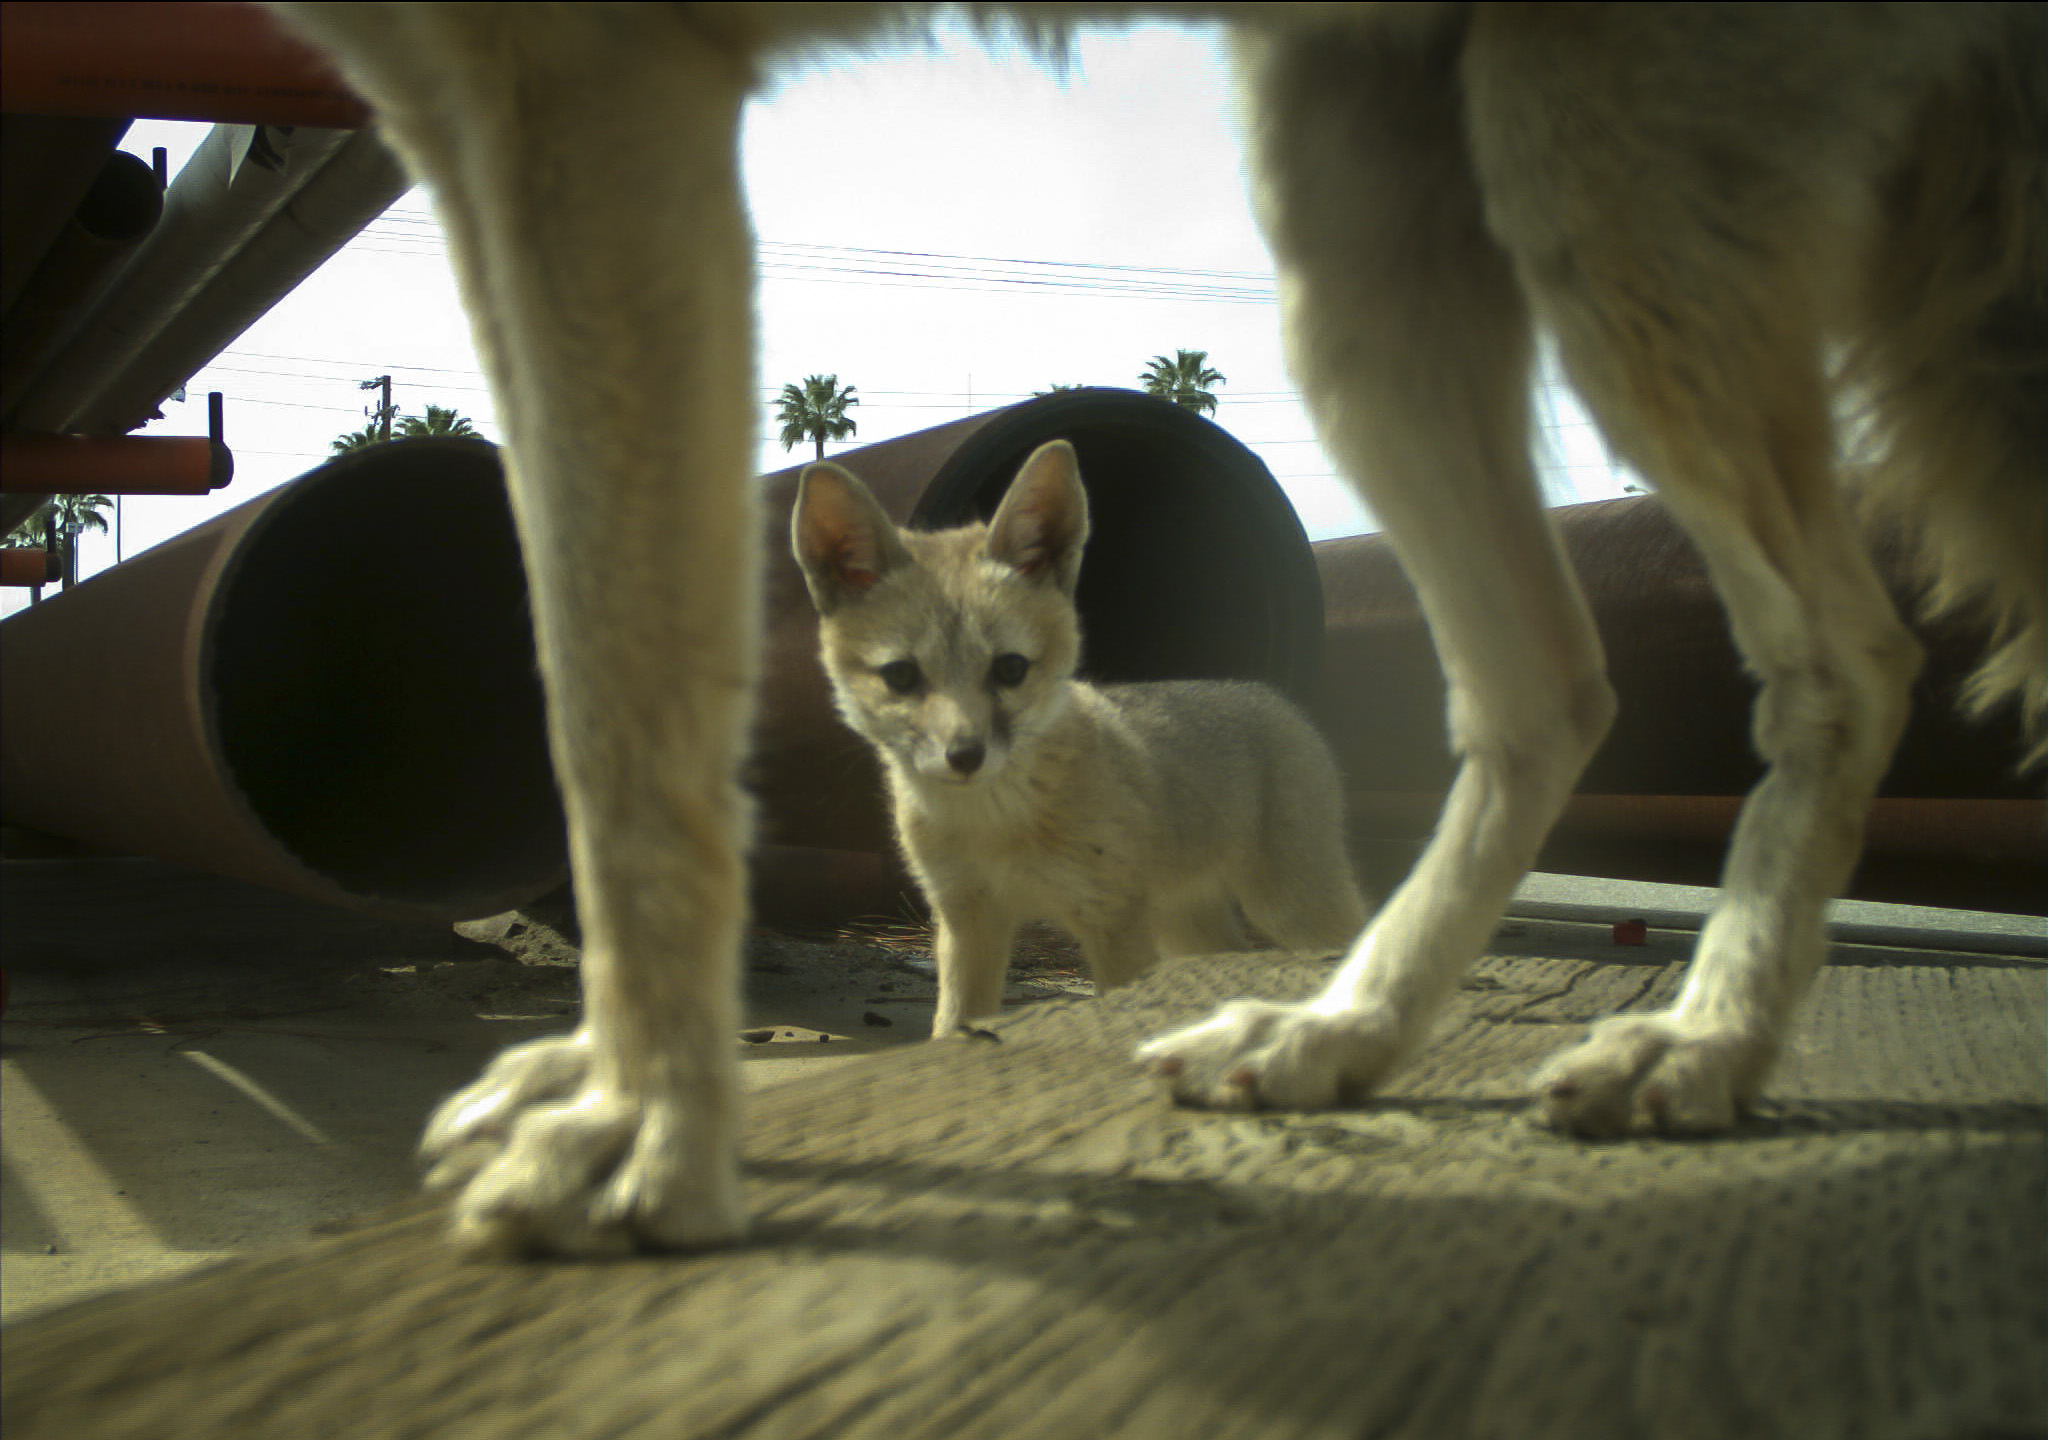 A kit fox puppy looking at the camera while one of his parents stands in front of the camera.